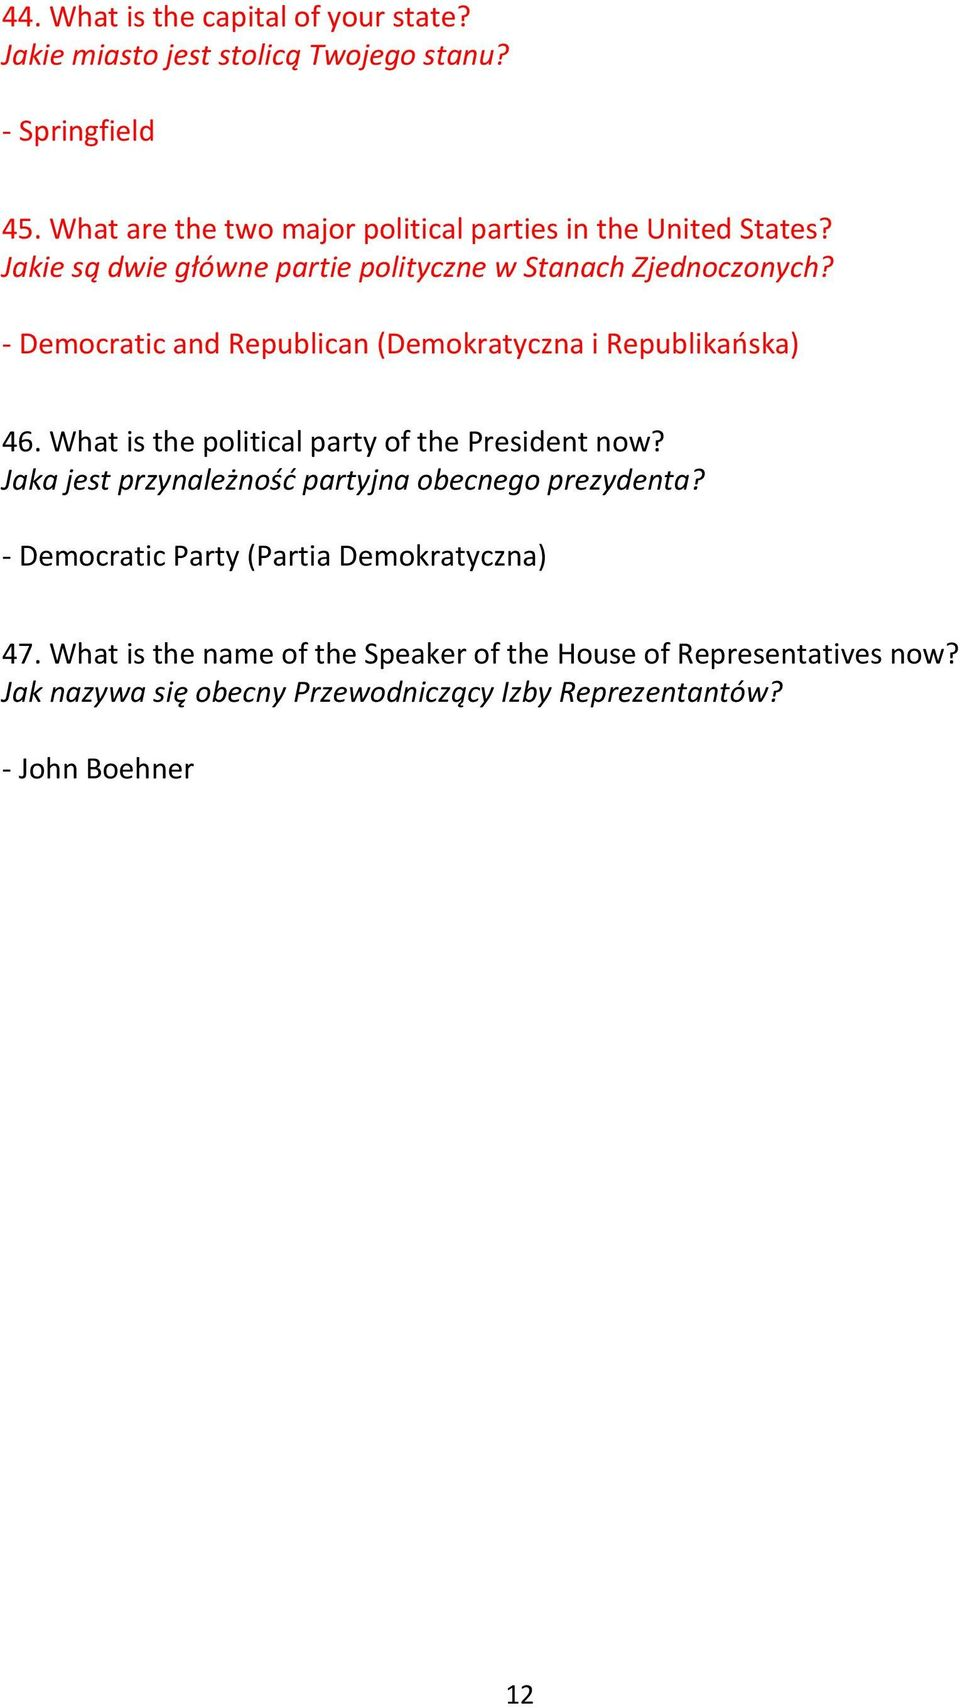 - Democratic and Republican (Demokratyczna i Republikańska) 46. What is the political party of the President now?